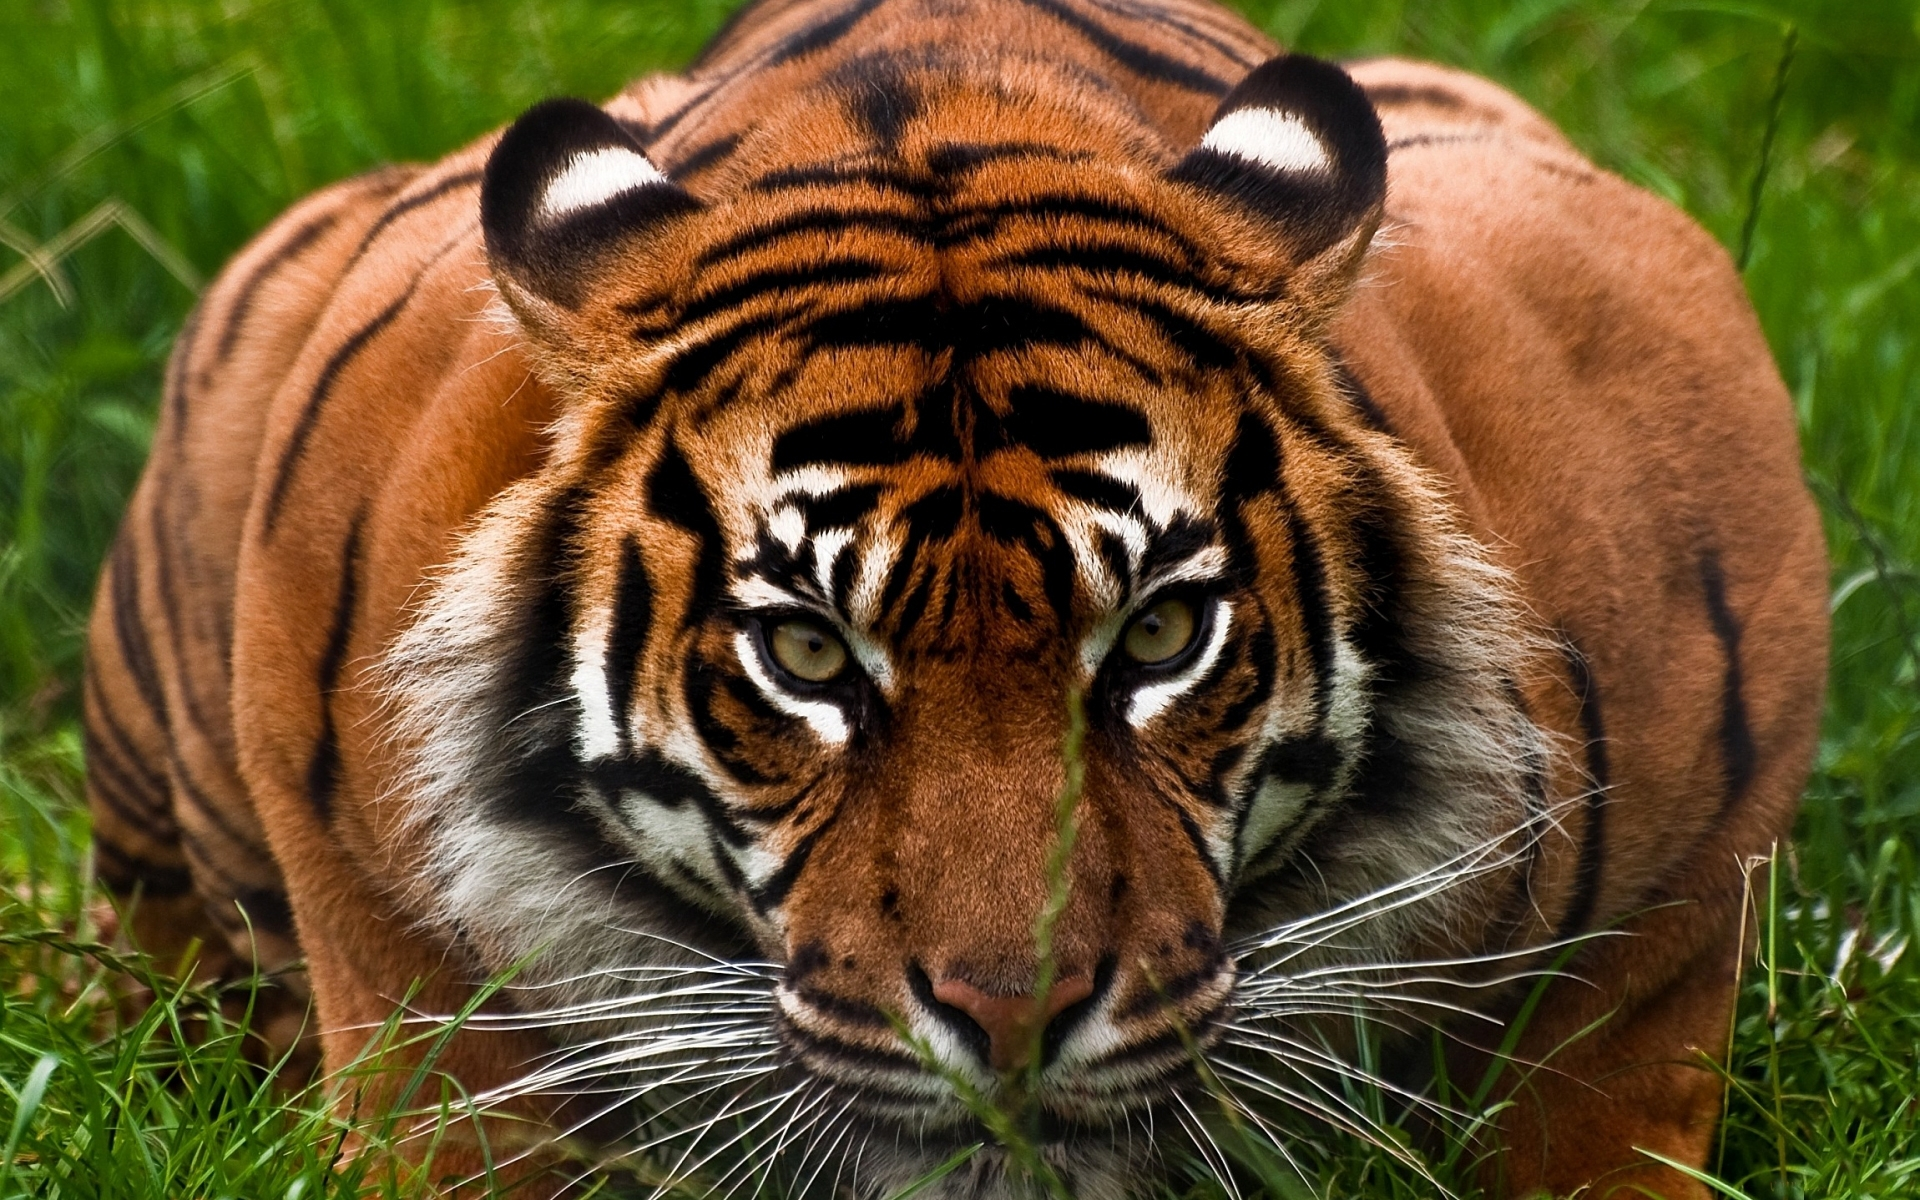 50009 download wallpaper Animals, Tigers screensavers and pictures for free